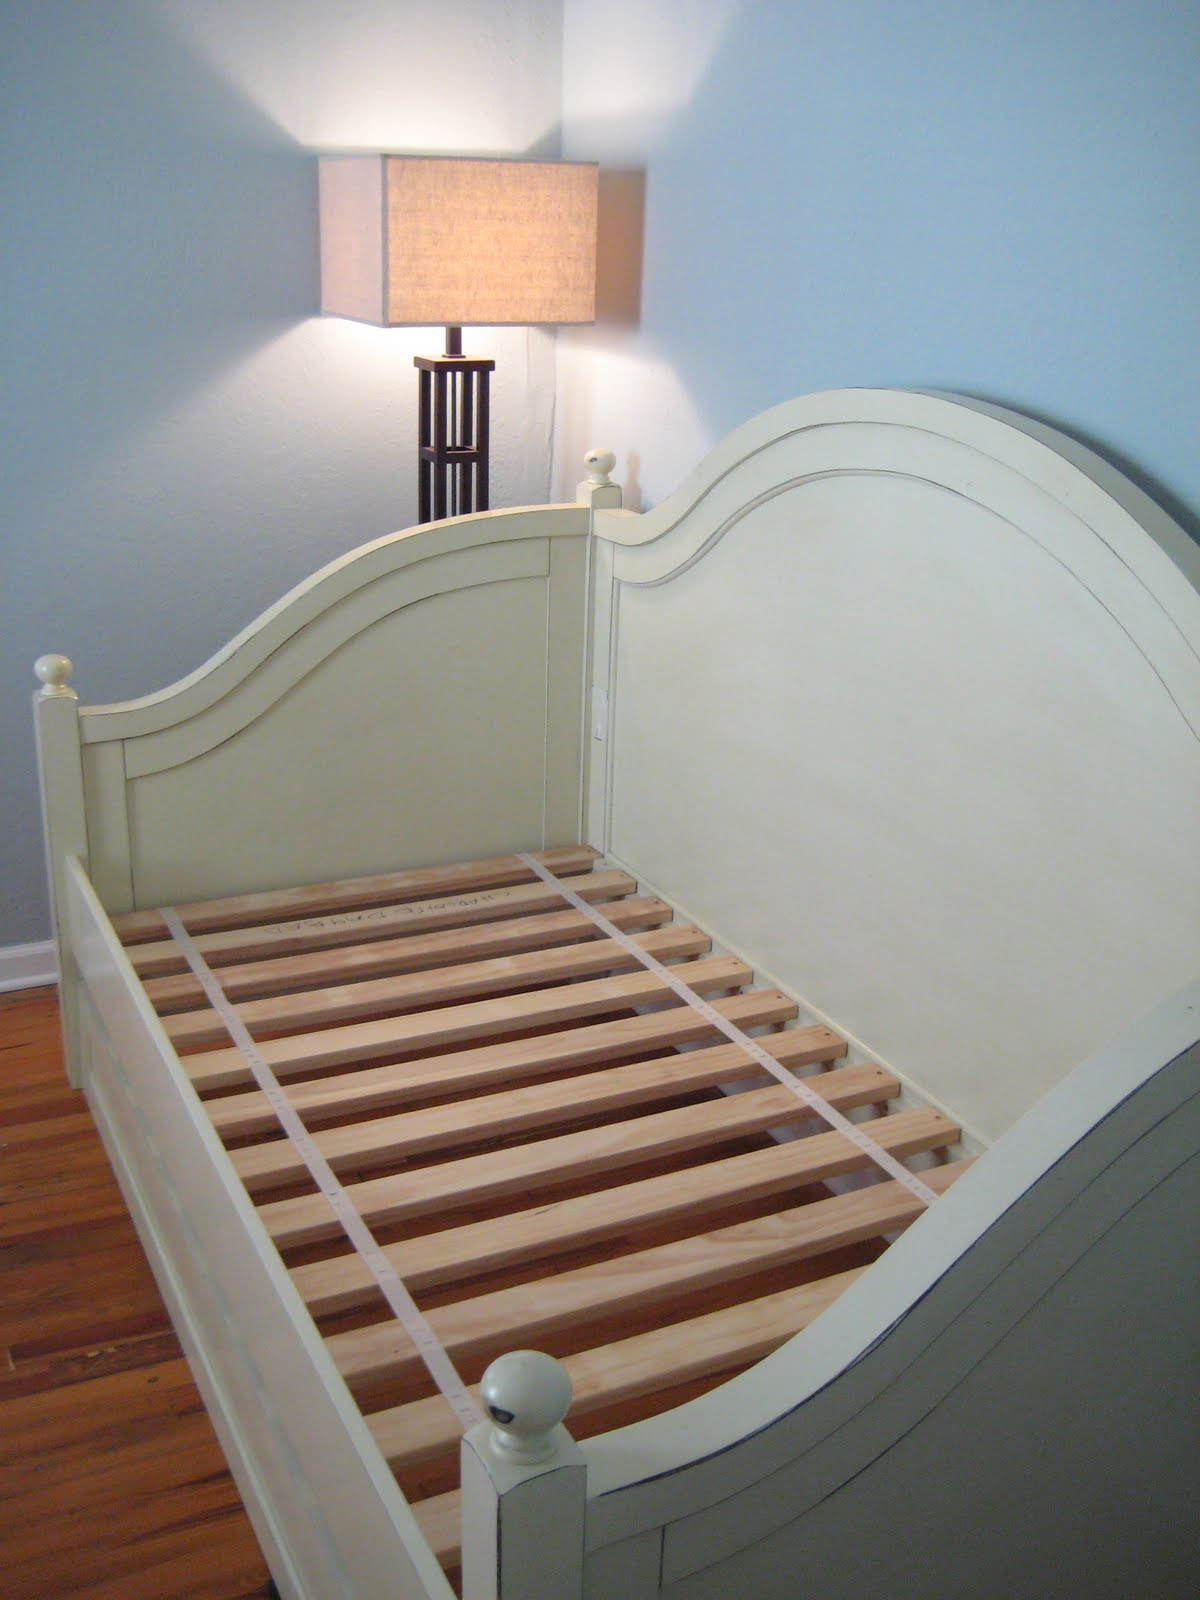 barn teen beds daybed trundle bedroom barns kids pottery daybeds bed boys madeline day girls